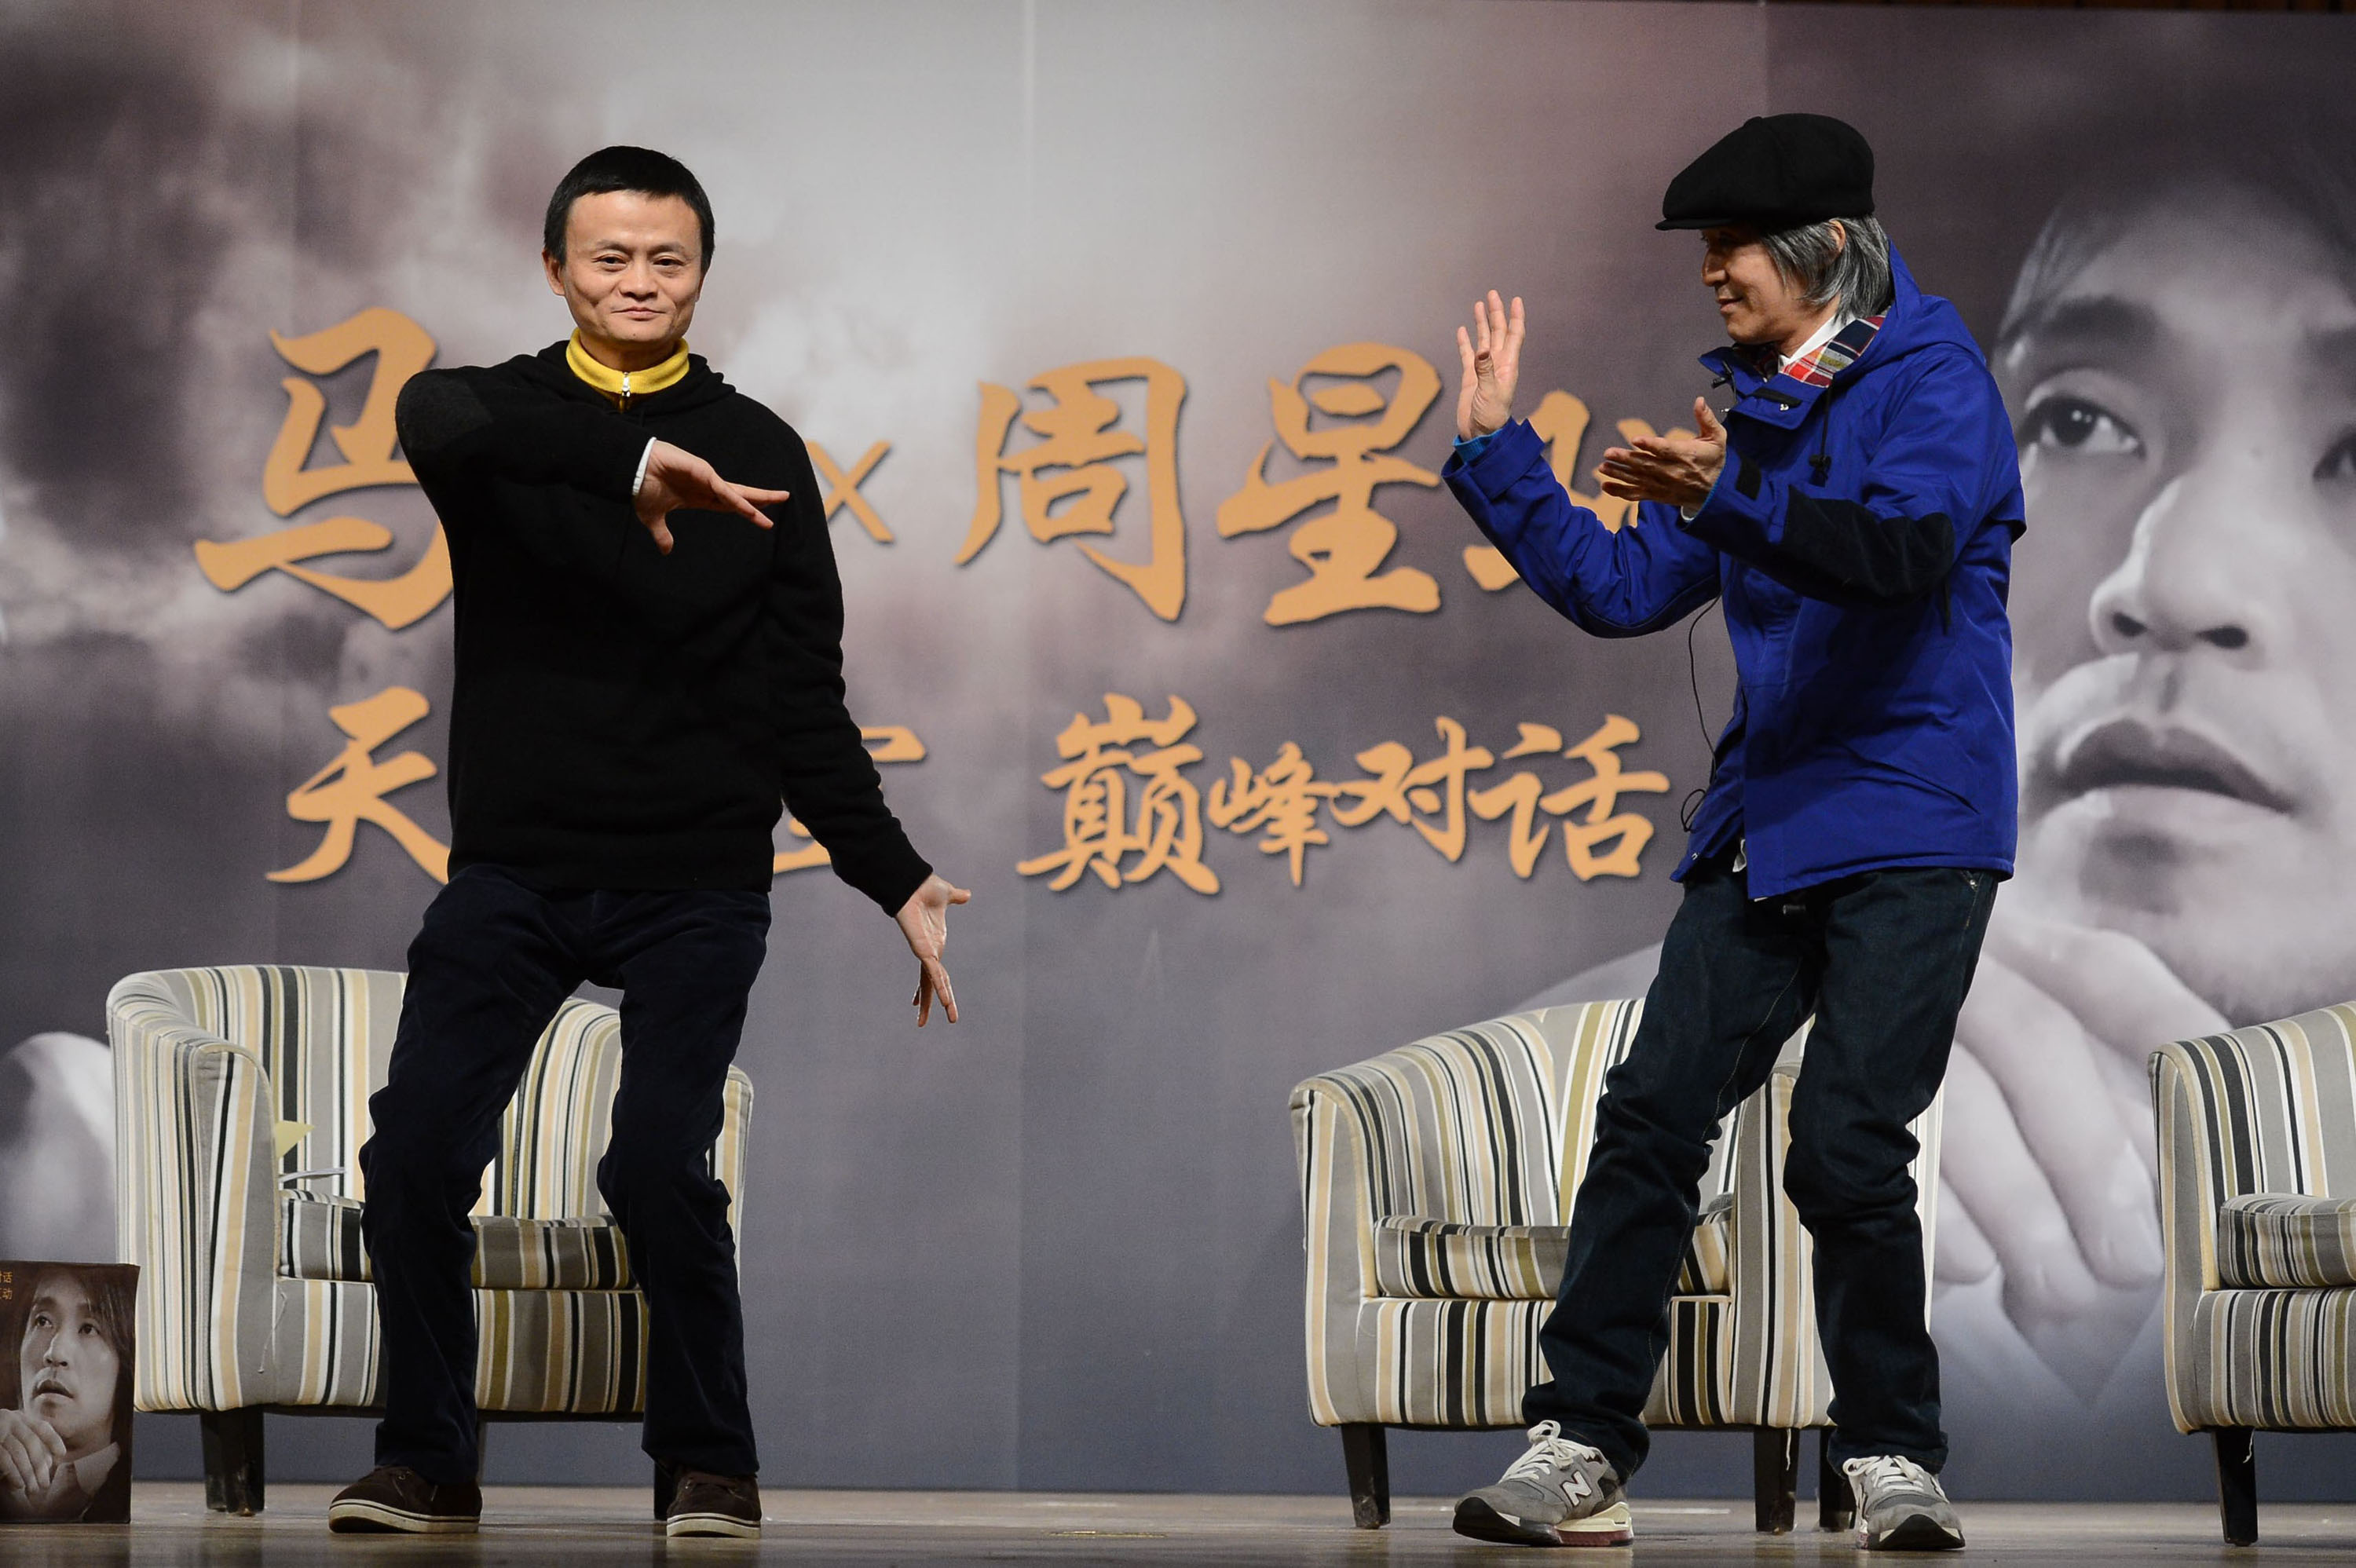 Ma doesn't mind practicing Tai Chi in public. Here he and Hong Kong comedian Stephen Chow enjoy the ancient martial art at the Communication University of China in Beijing in January, 2013.